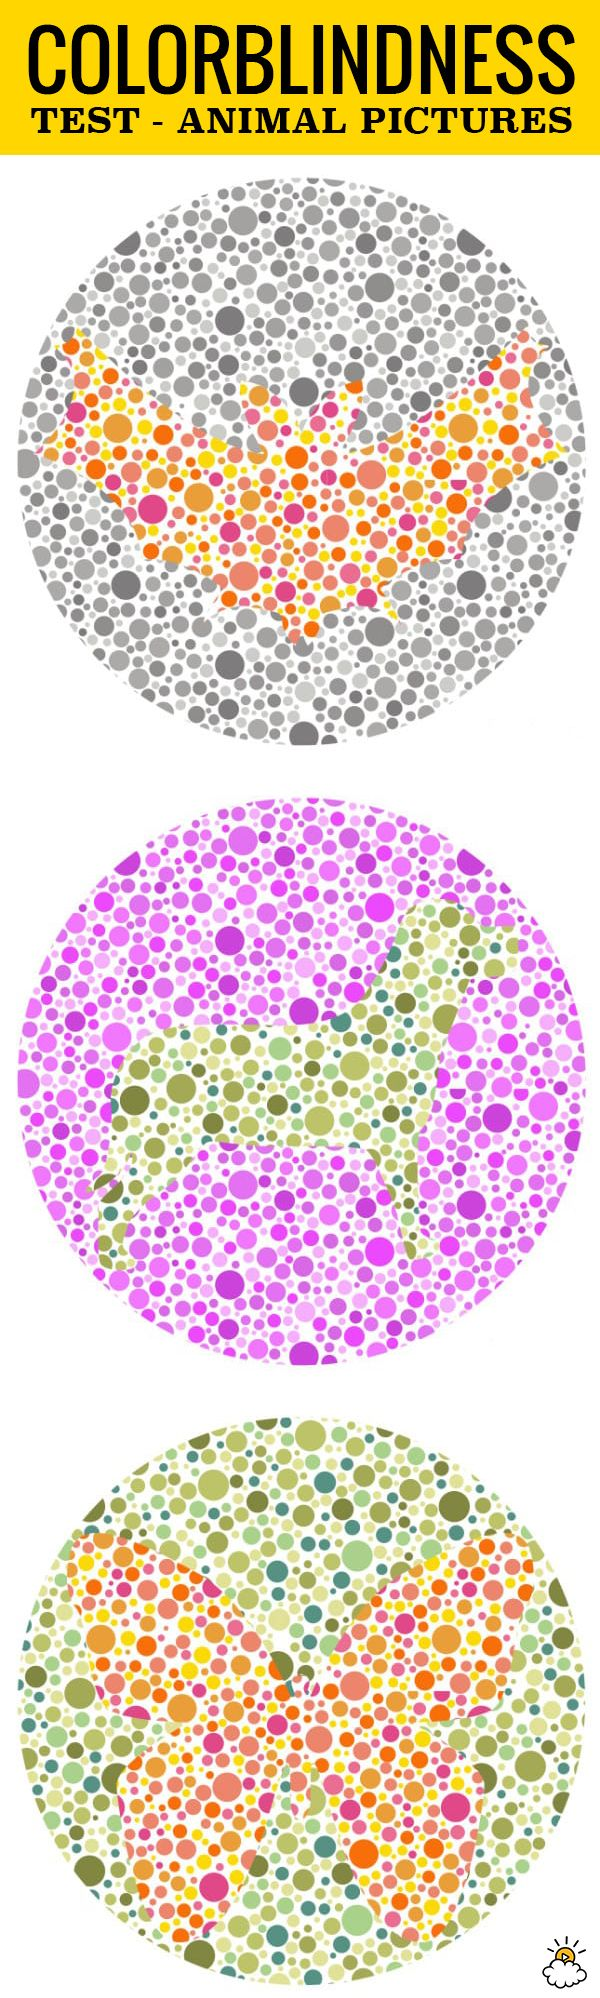 Book for color blindness - How Color Blind Are You This Test Reveals The Truth